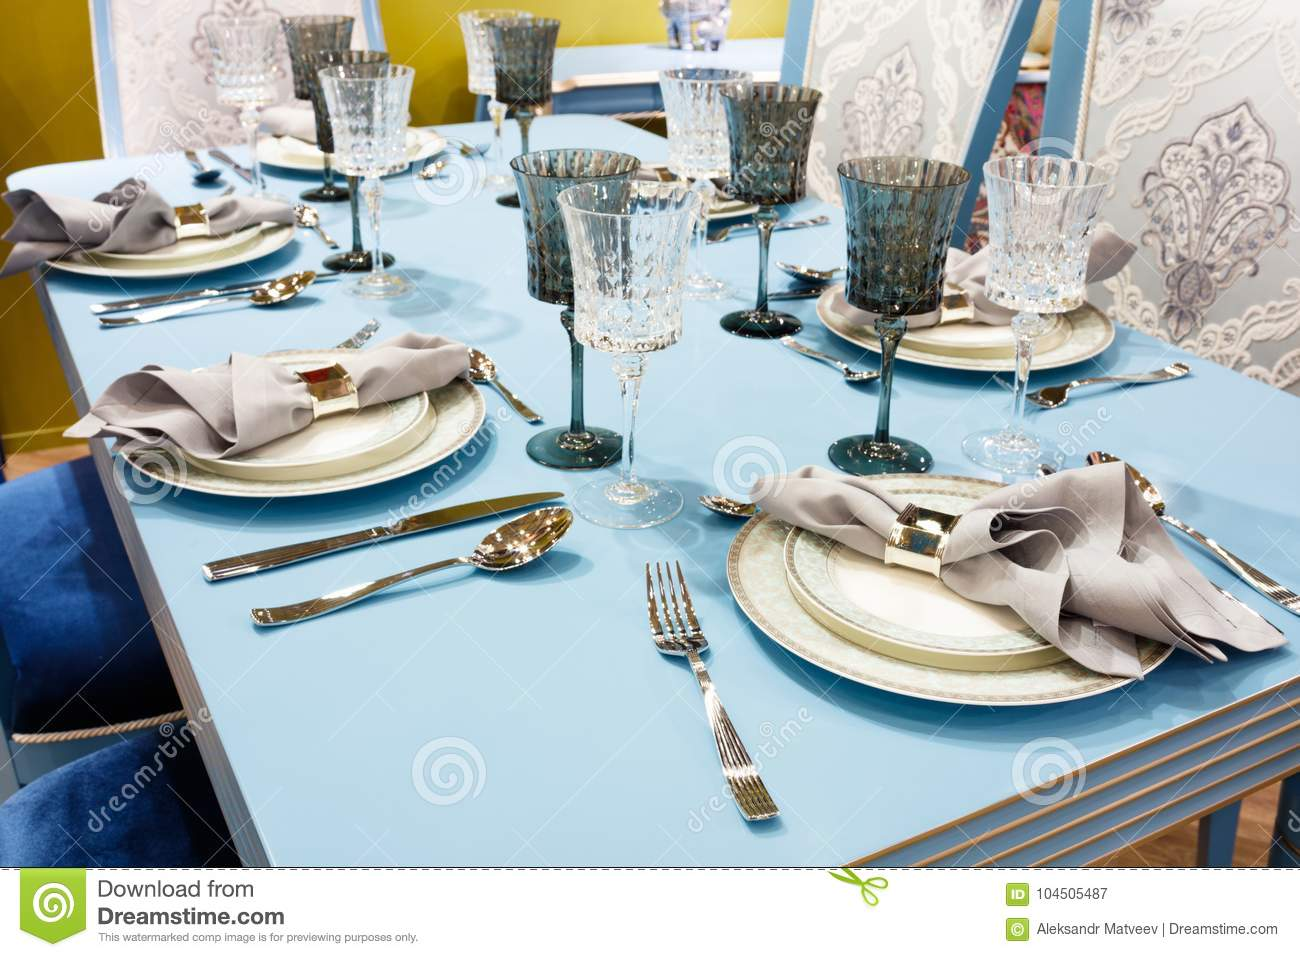 Interior Of Classic White Kitchen And Dining Area; Served Table For ...